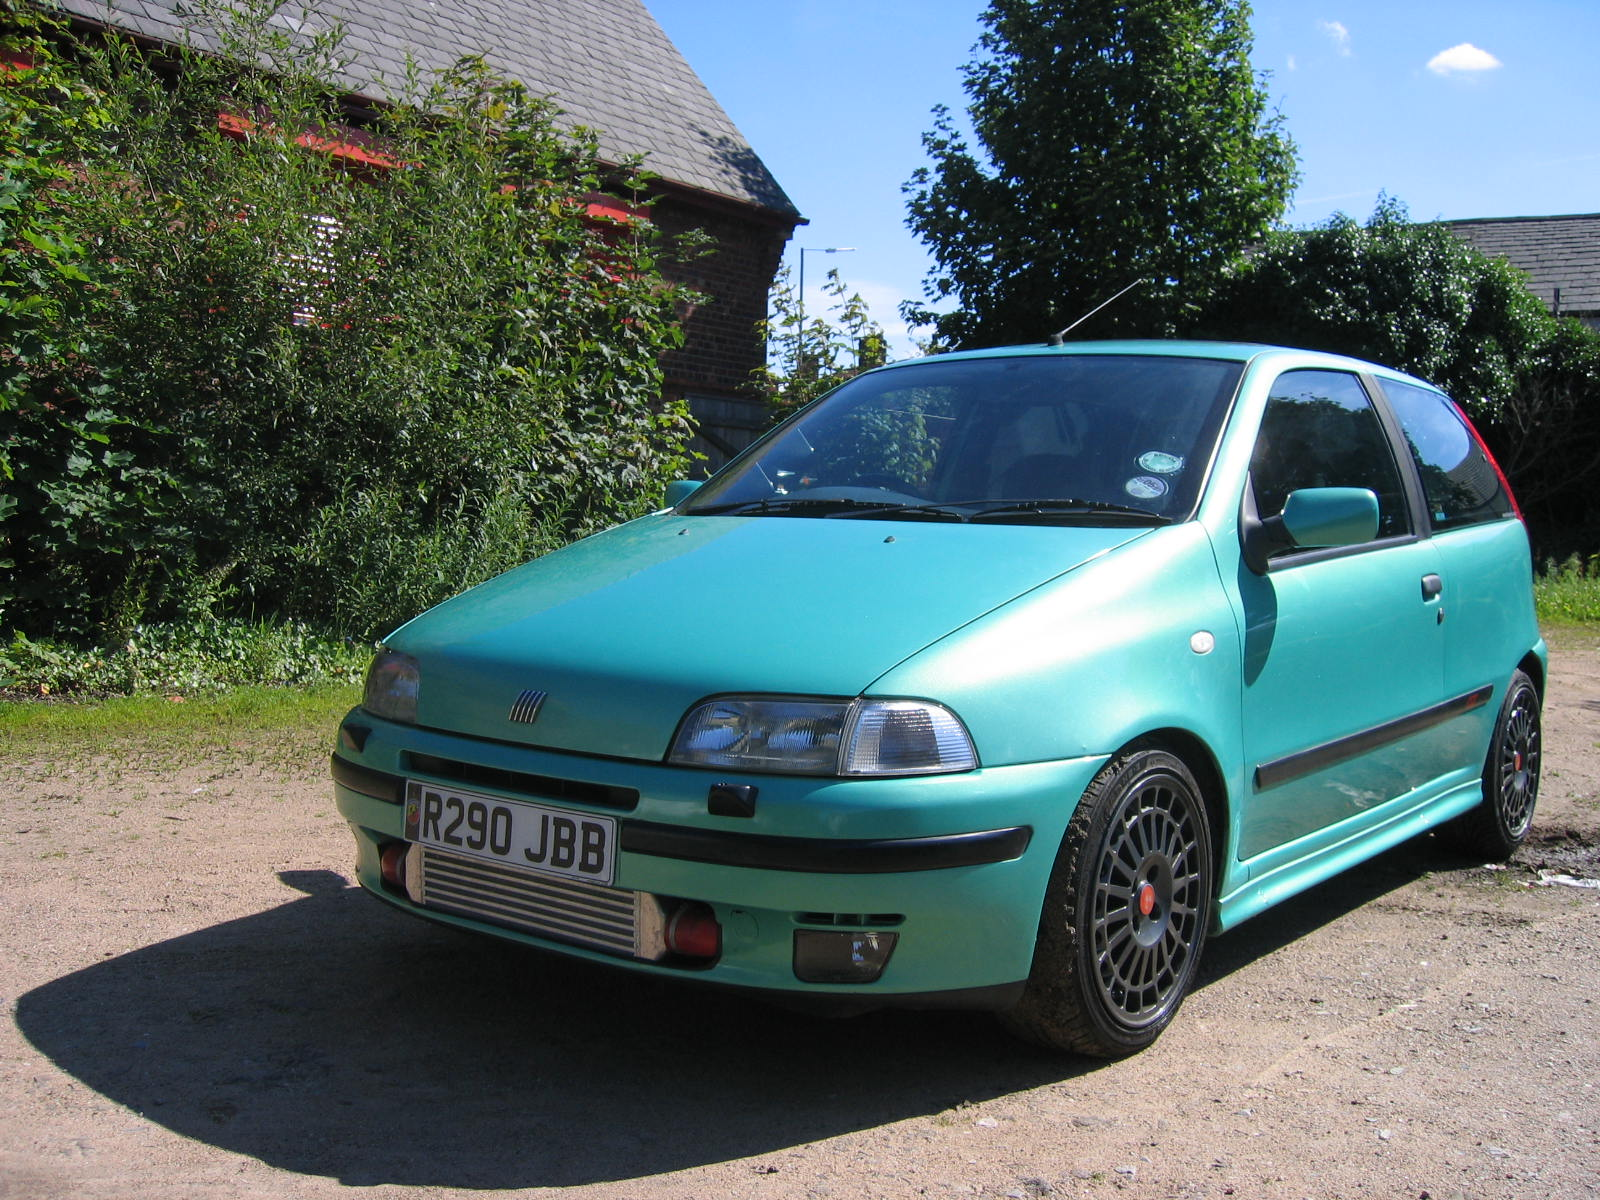 my old fiat punto gt the car that started it all 1 4 turbocharged 8v with shocked. Black Bedroom Furniture Sets. Home Design Ideas